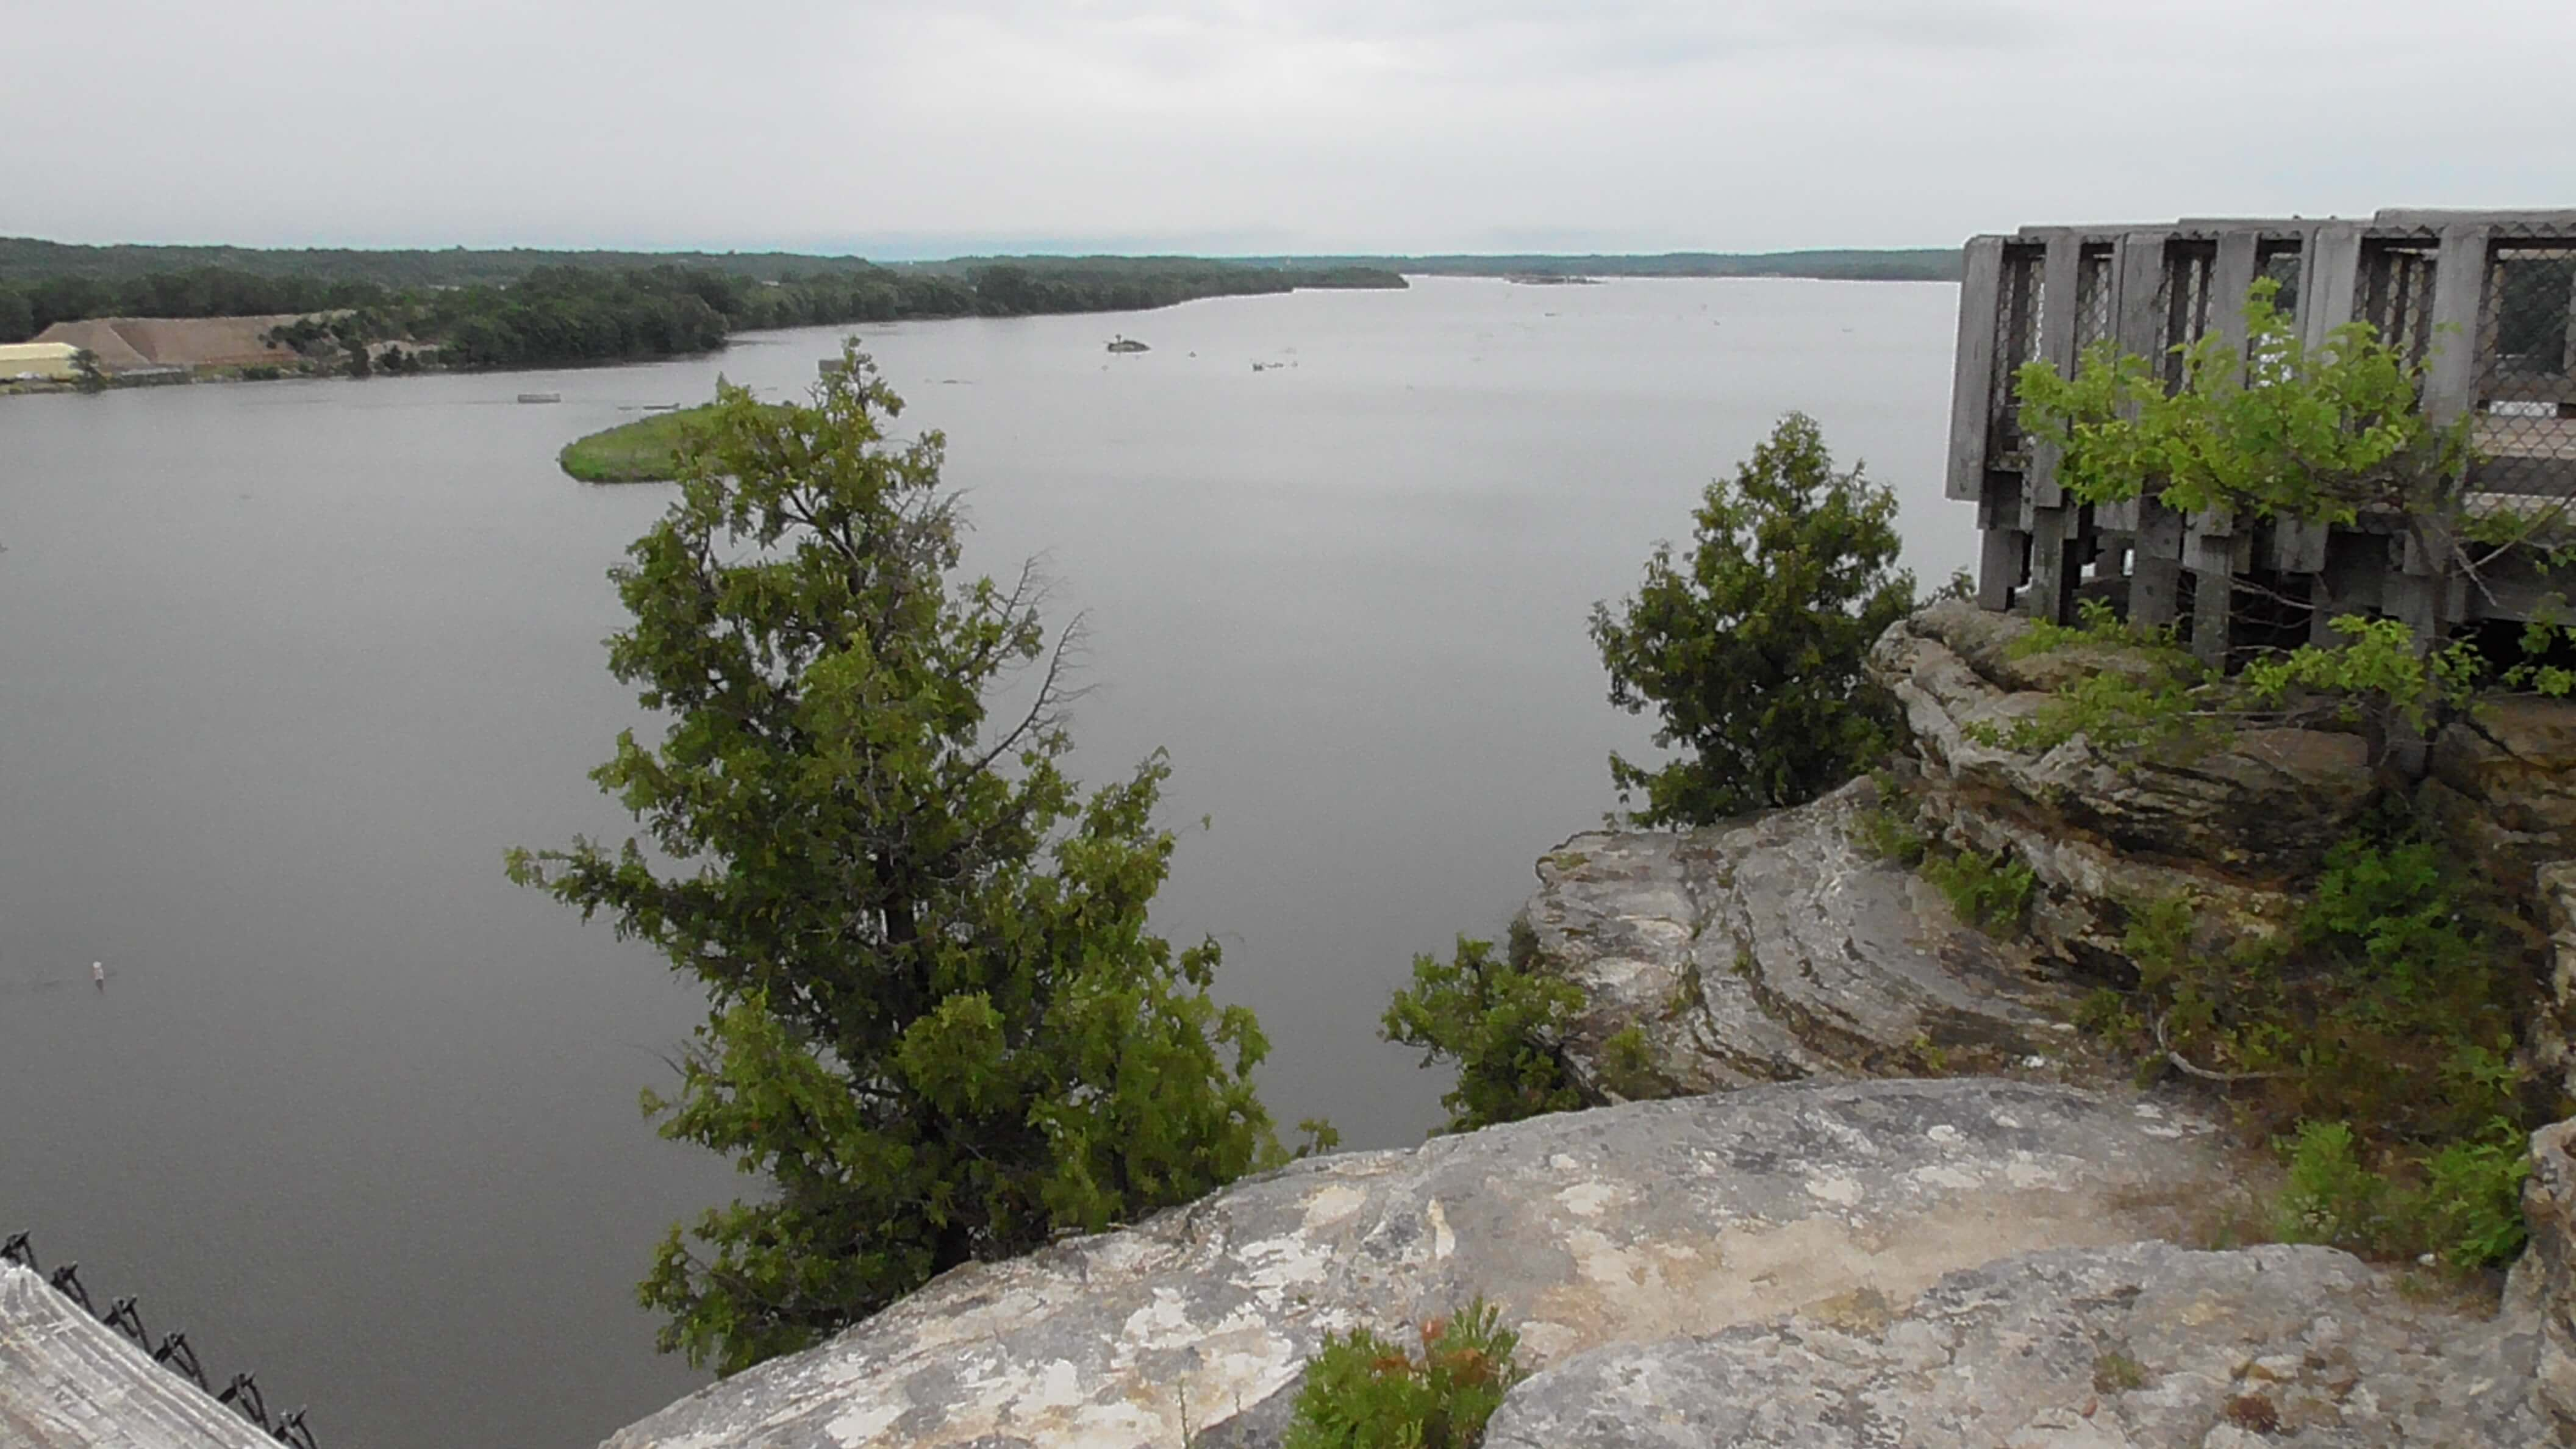 View from Eagles Cliff Overlook